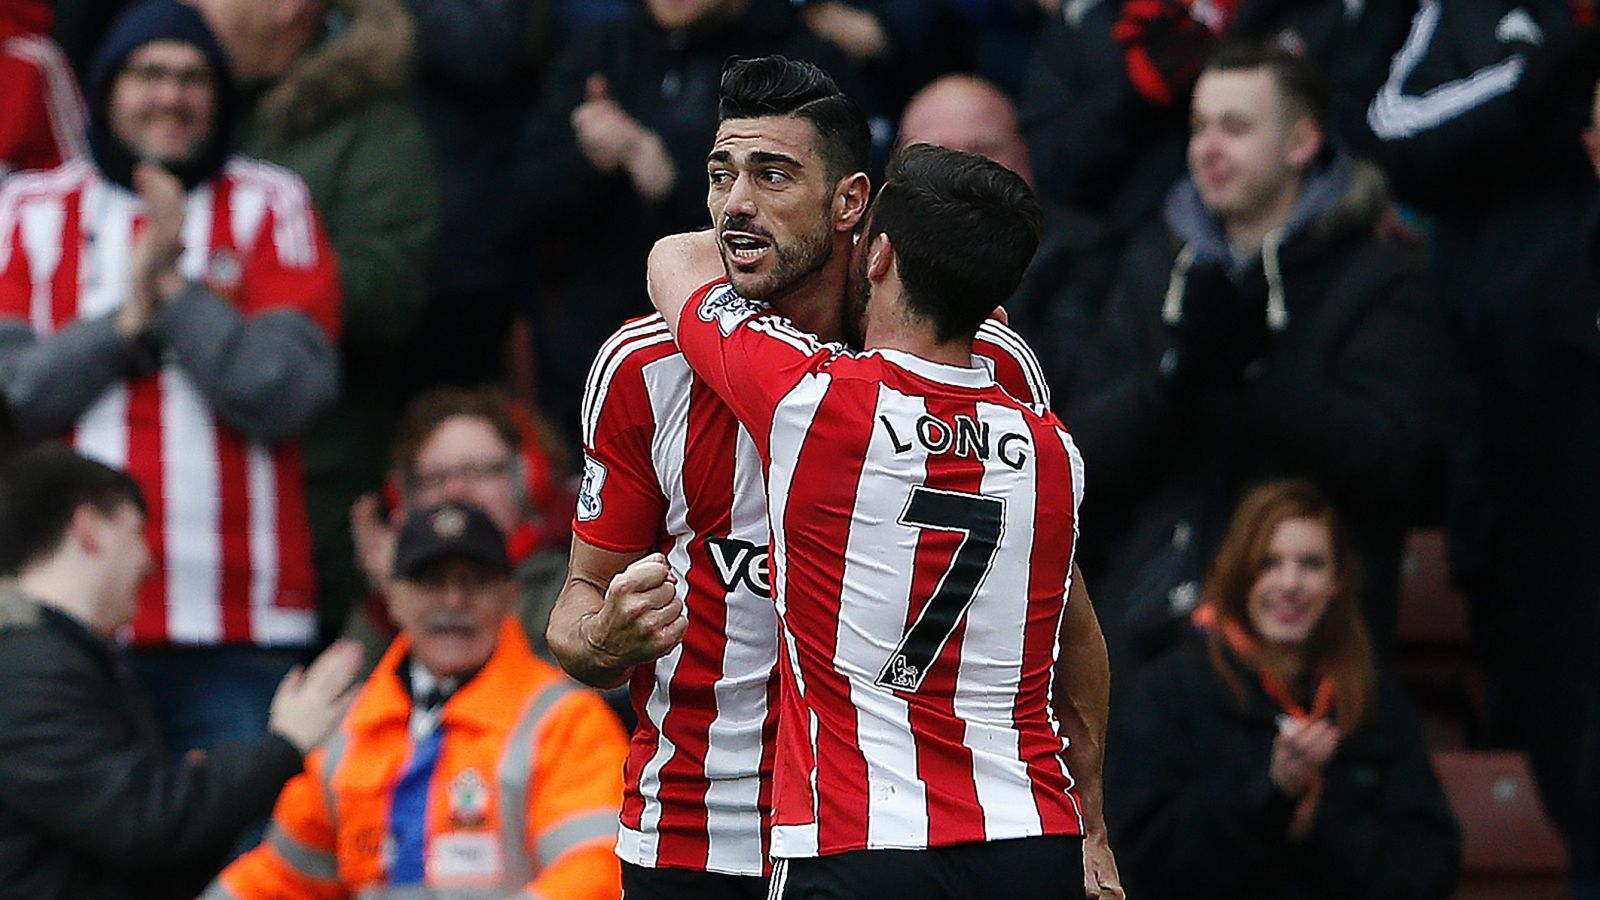 Southampton come from two down to beat Liverpool 3-2